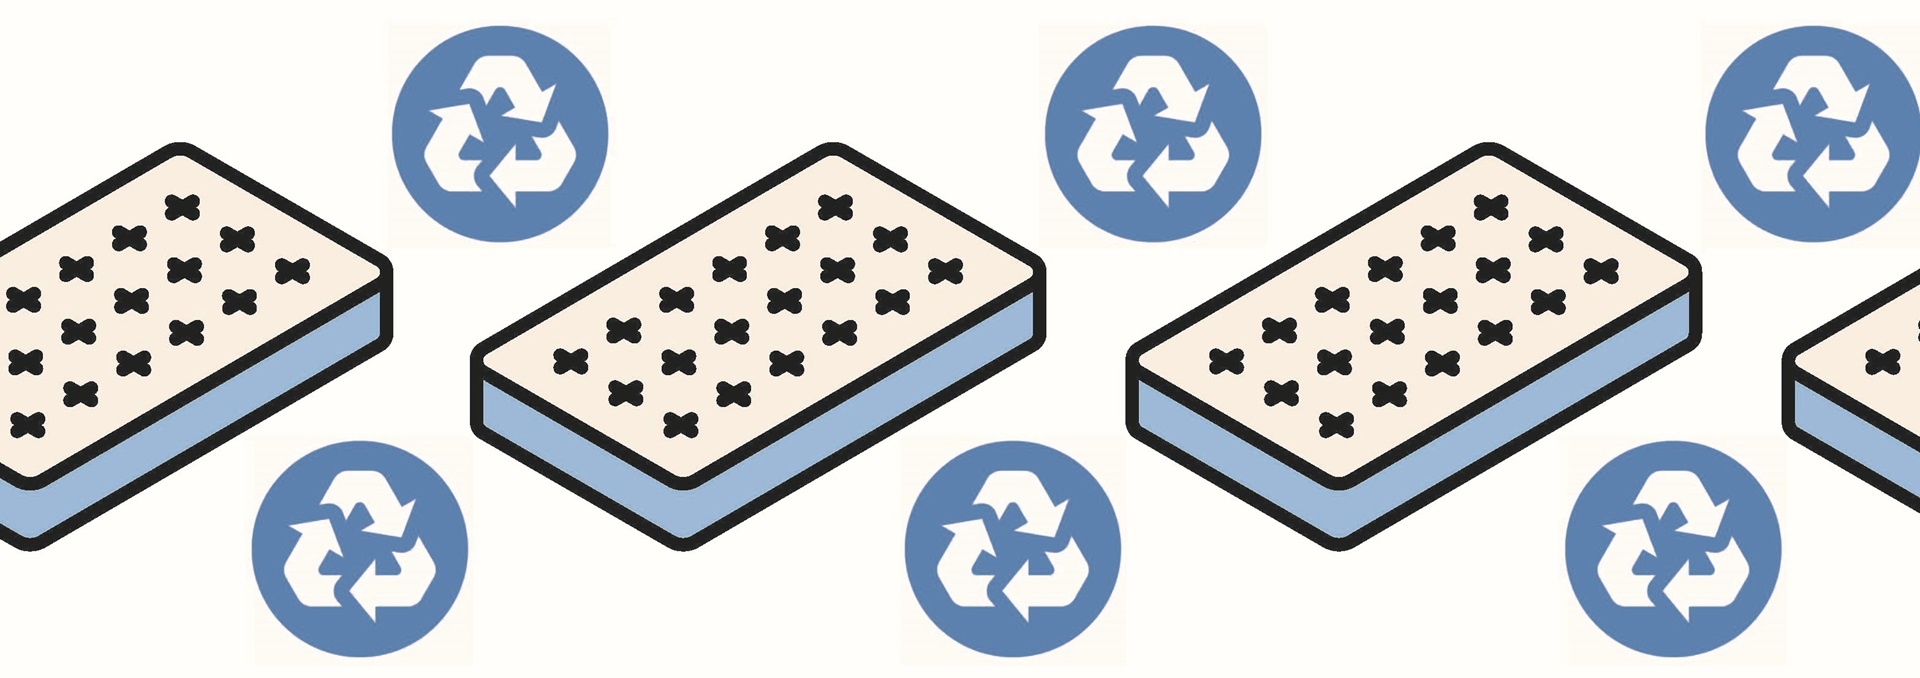 Cartoon images of mattresses and recycling symbols